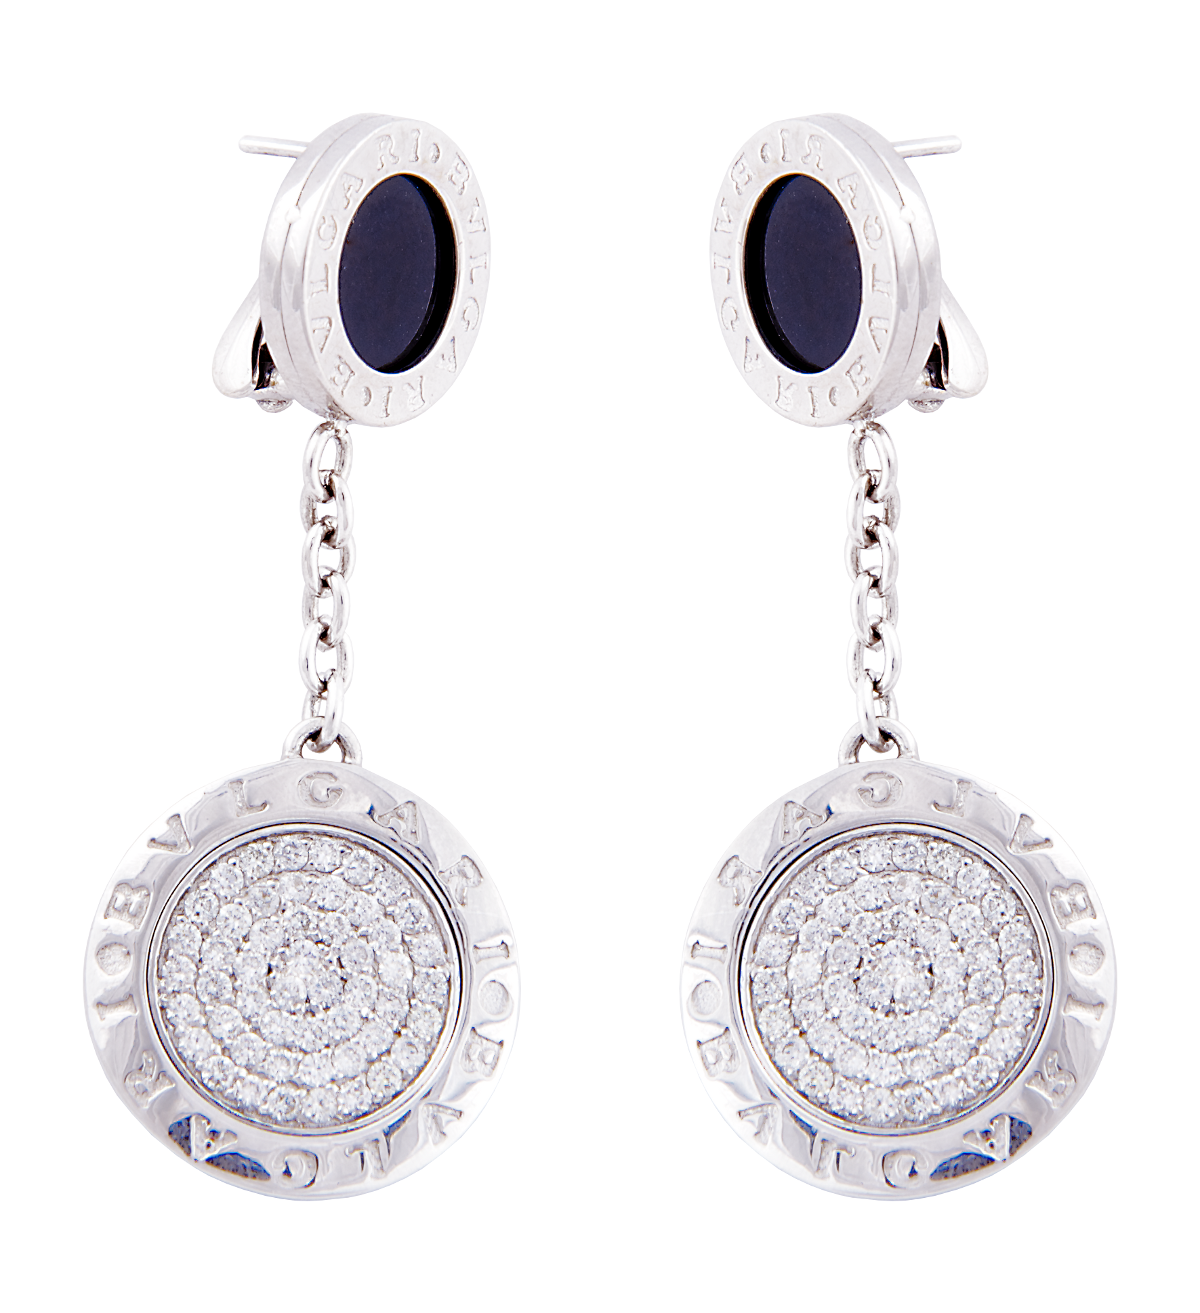 Jewellery Png image #36058